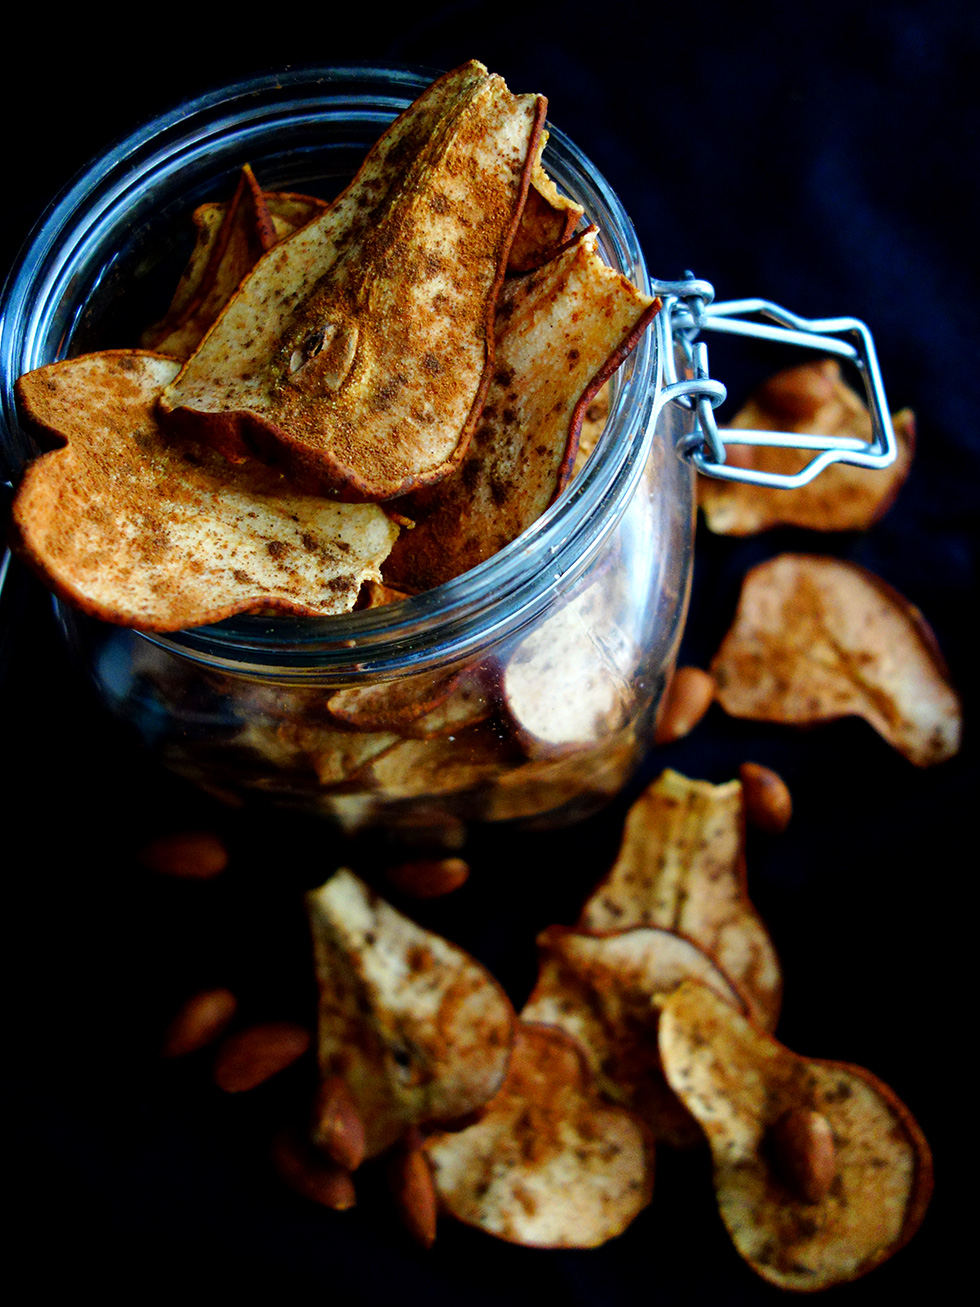 Dehydrated Cinnamon Spiced Pear Crisps Slices Chips